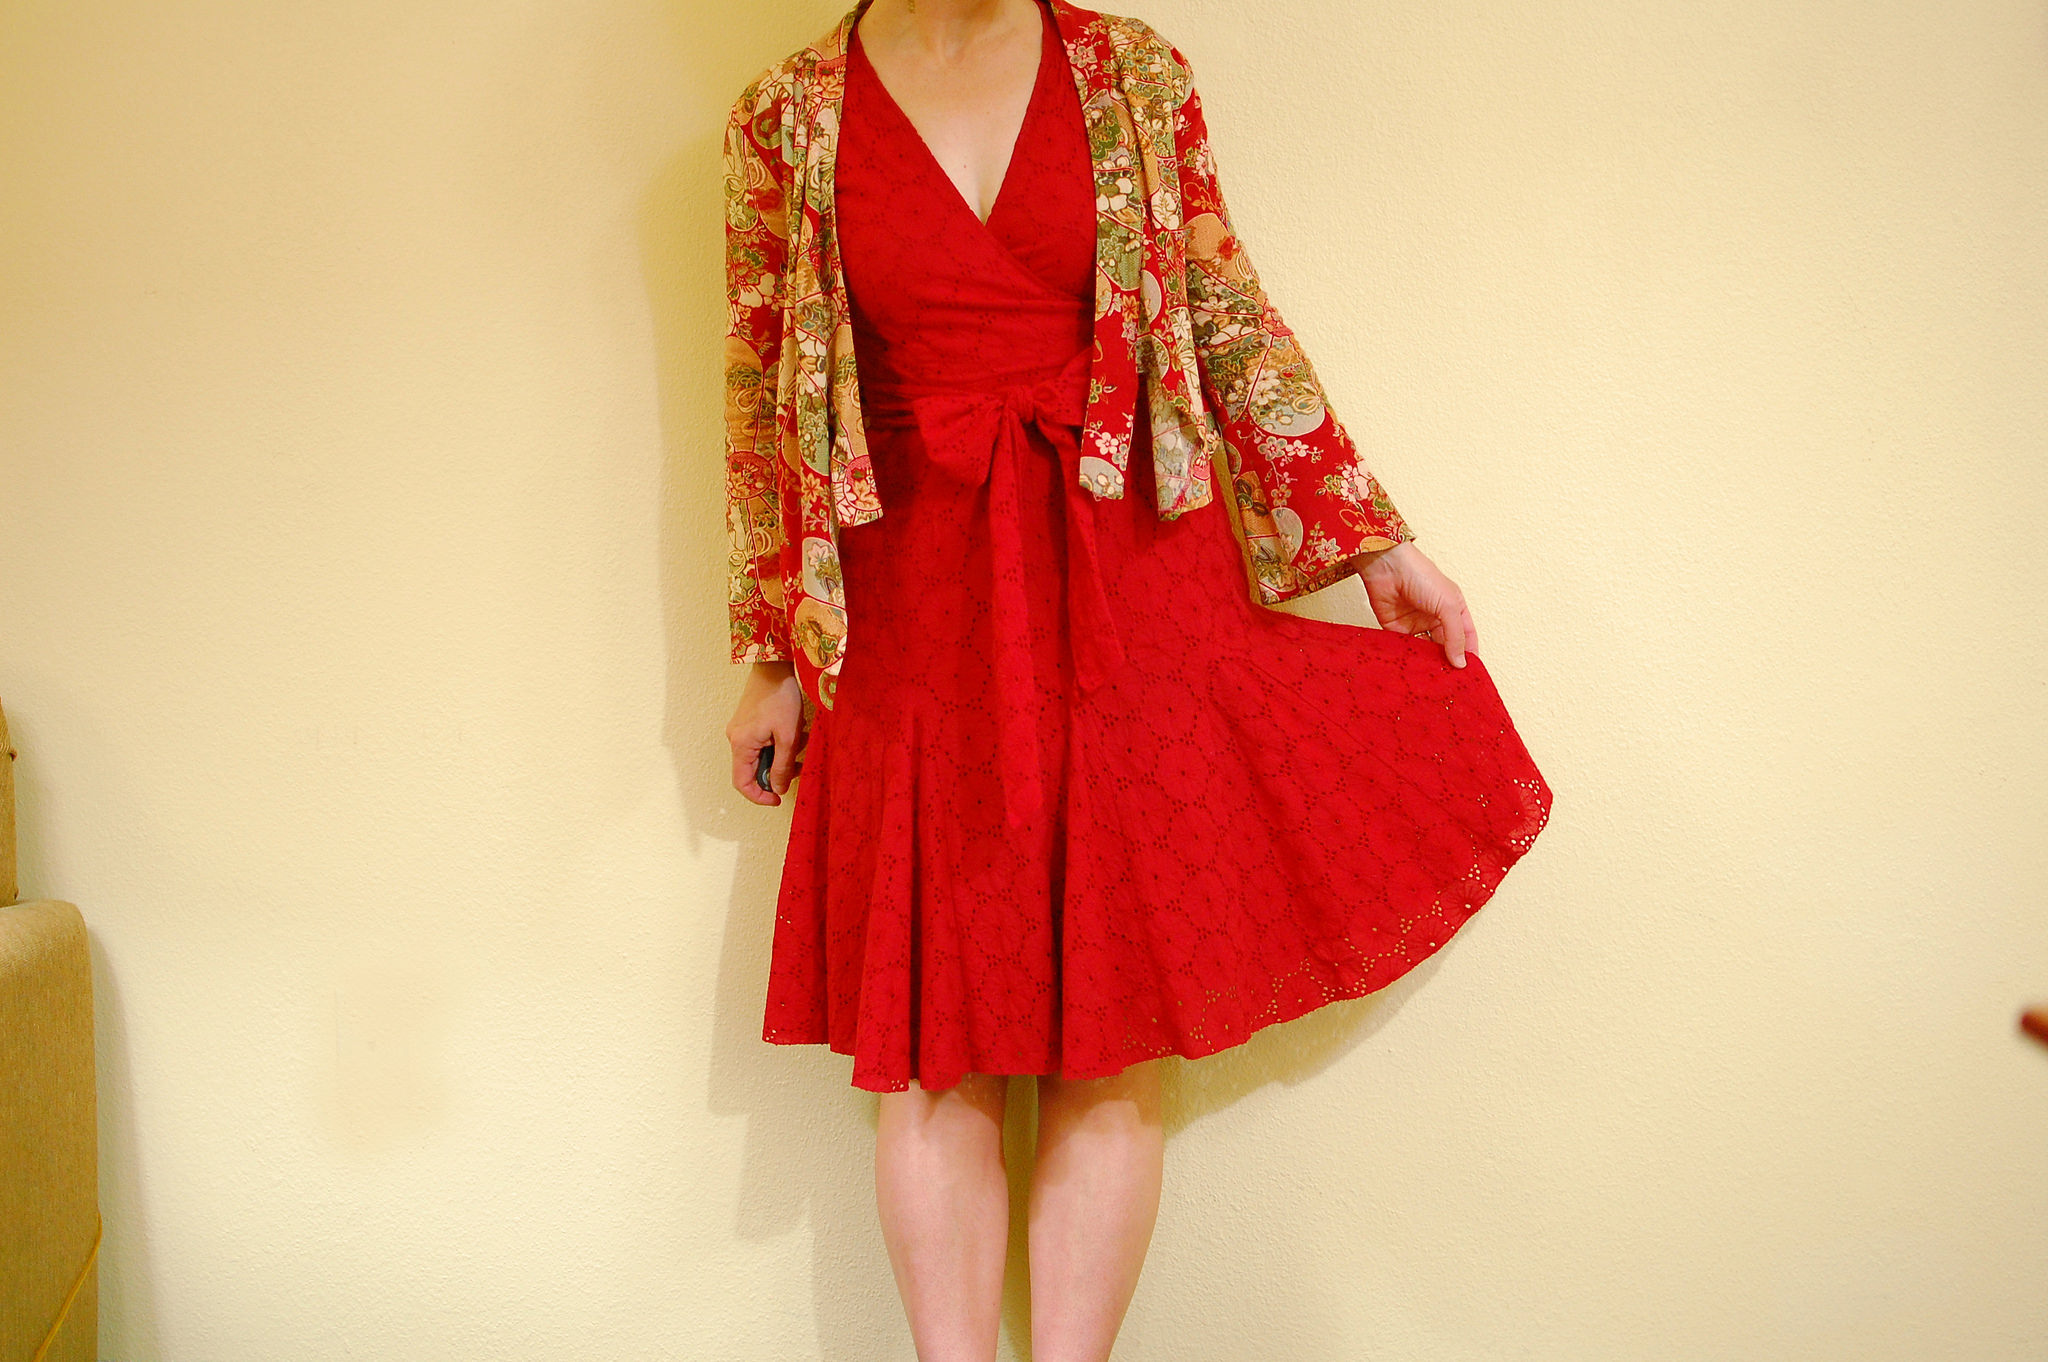 red eyelet dress kimono jacket outfit ootd whatiwore2day